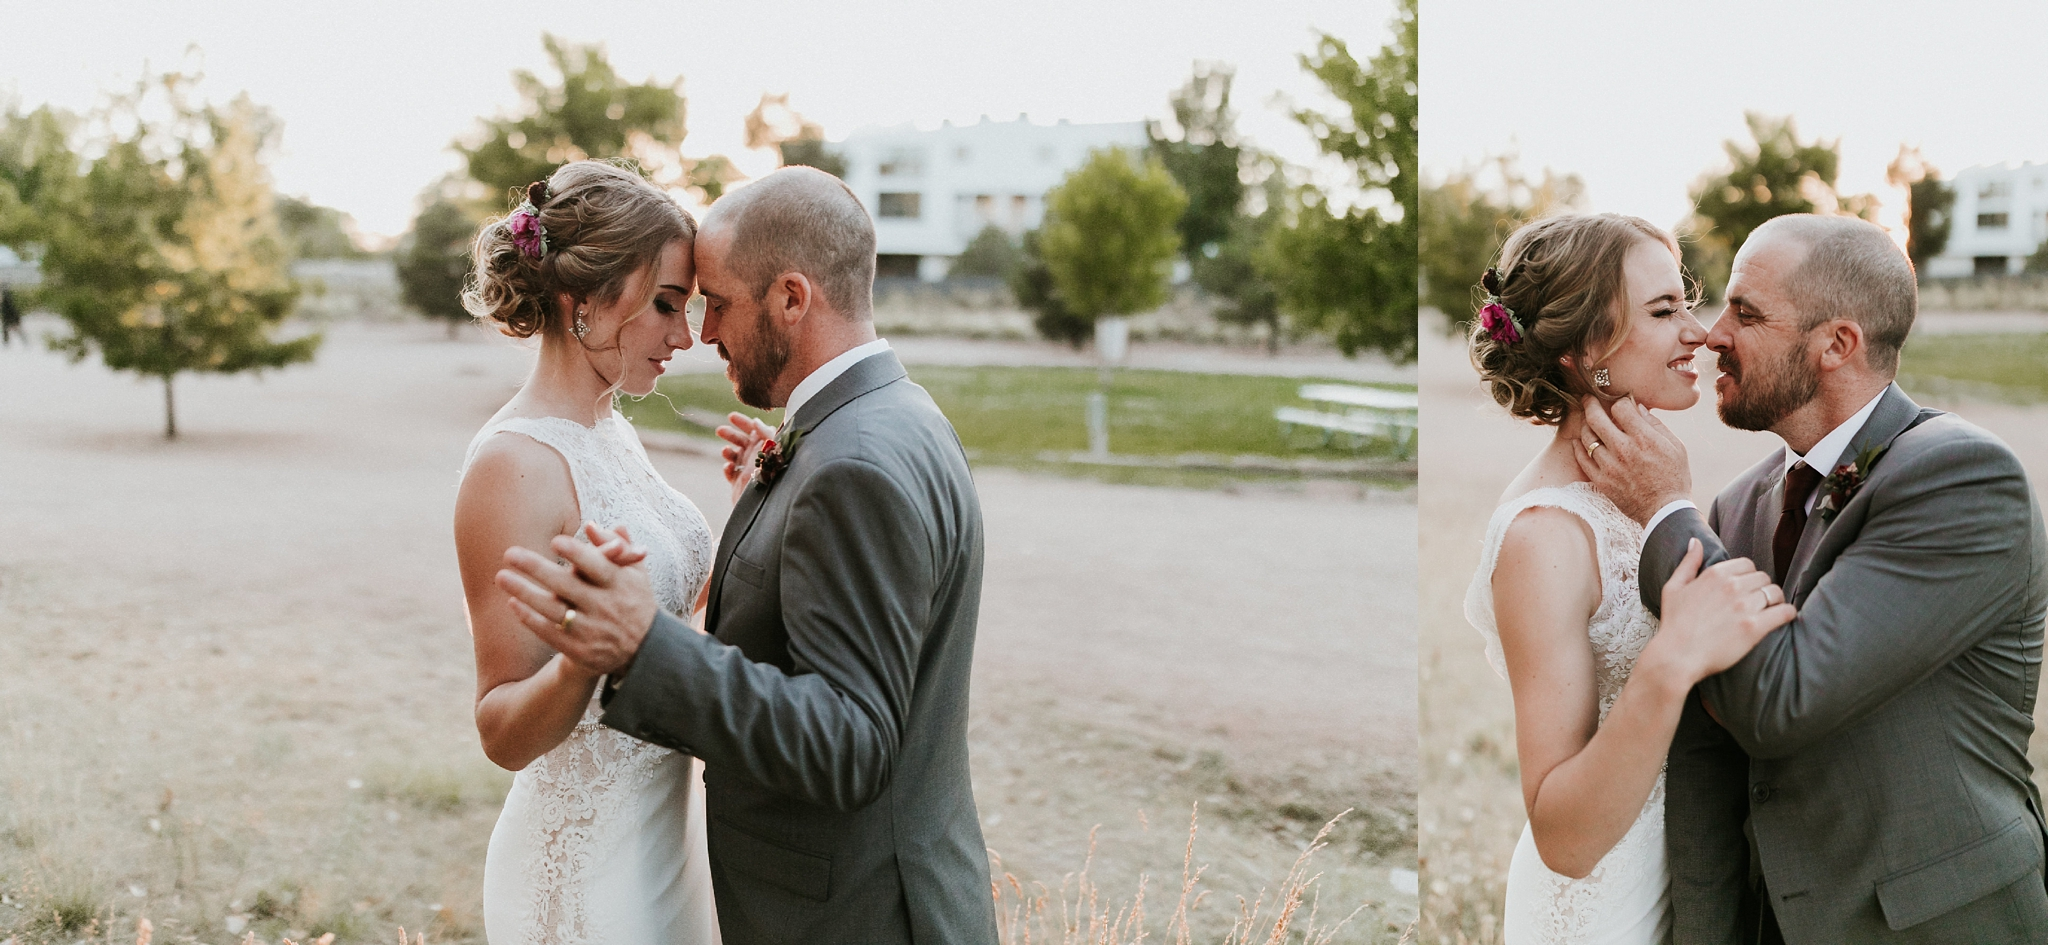 Alicia+lucia+photography+-+albuquerque+wedding+photographer+-+santa+fe+wedding+photography+-+new+mexico+wedding+photographer+-+new+mexico+wedding+-+santa+fe+wedding+-+albuquerque+wedding+-+bridal+hair_0079.jpg